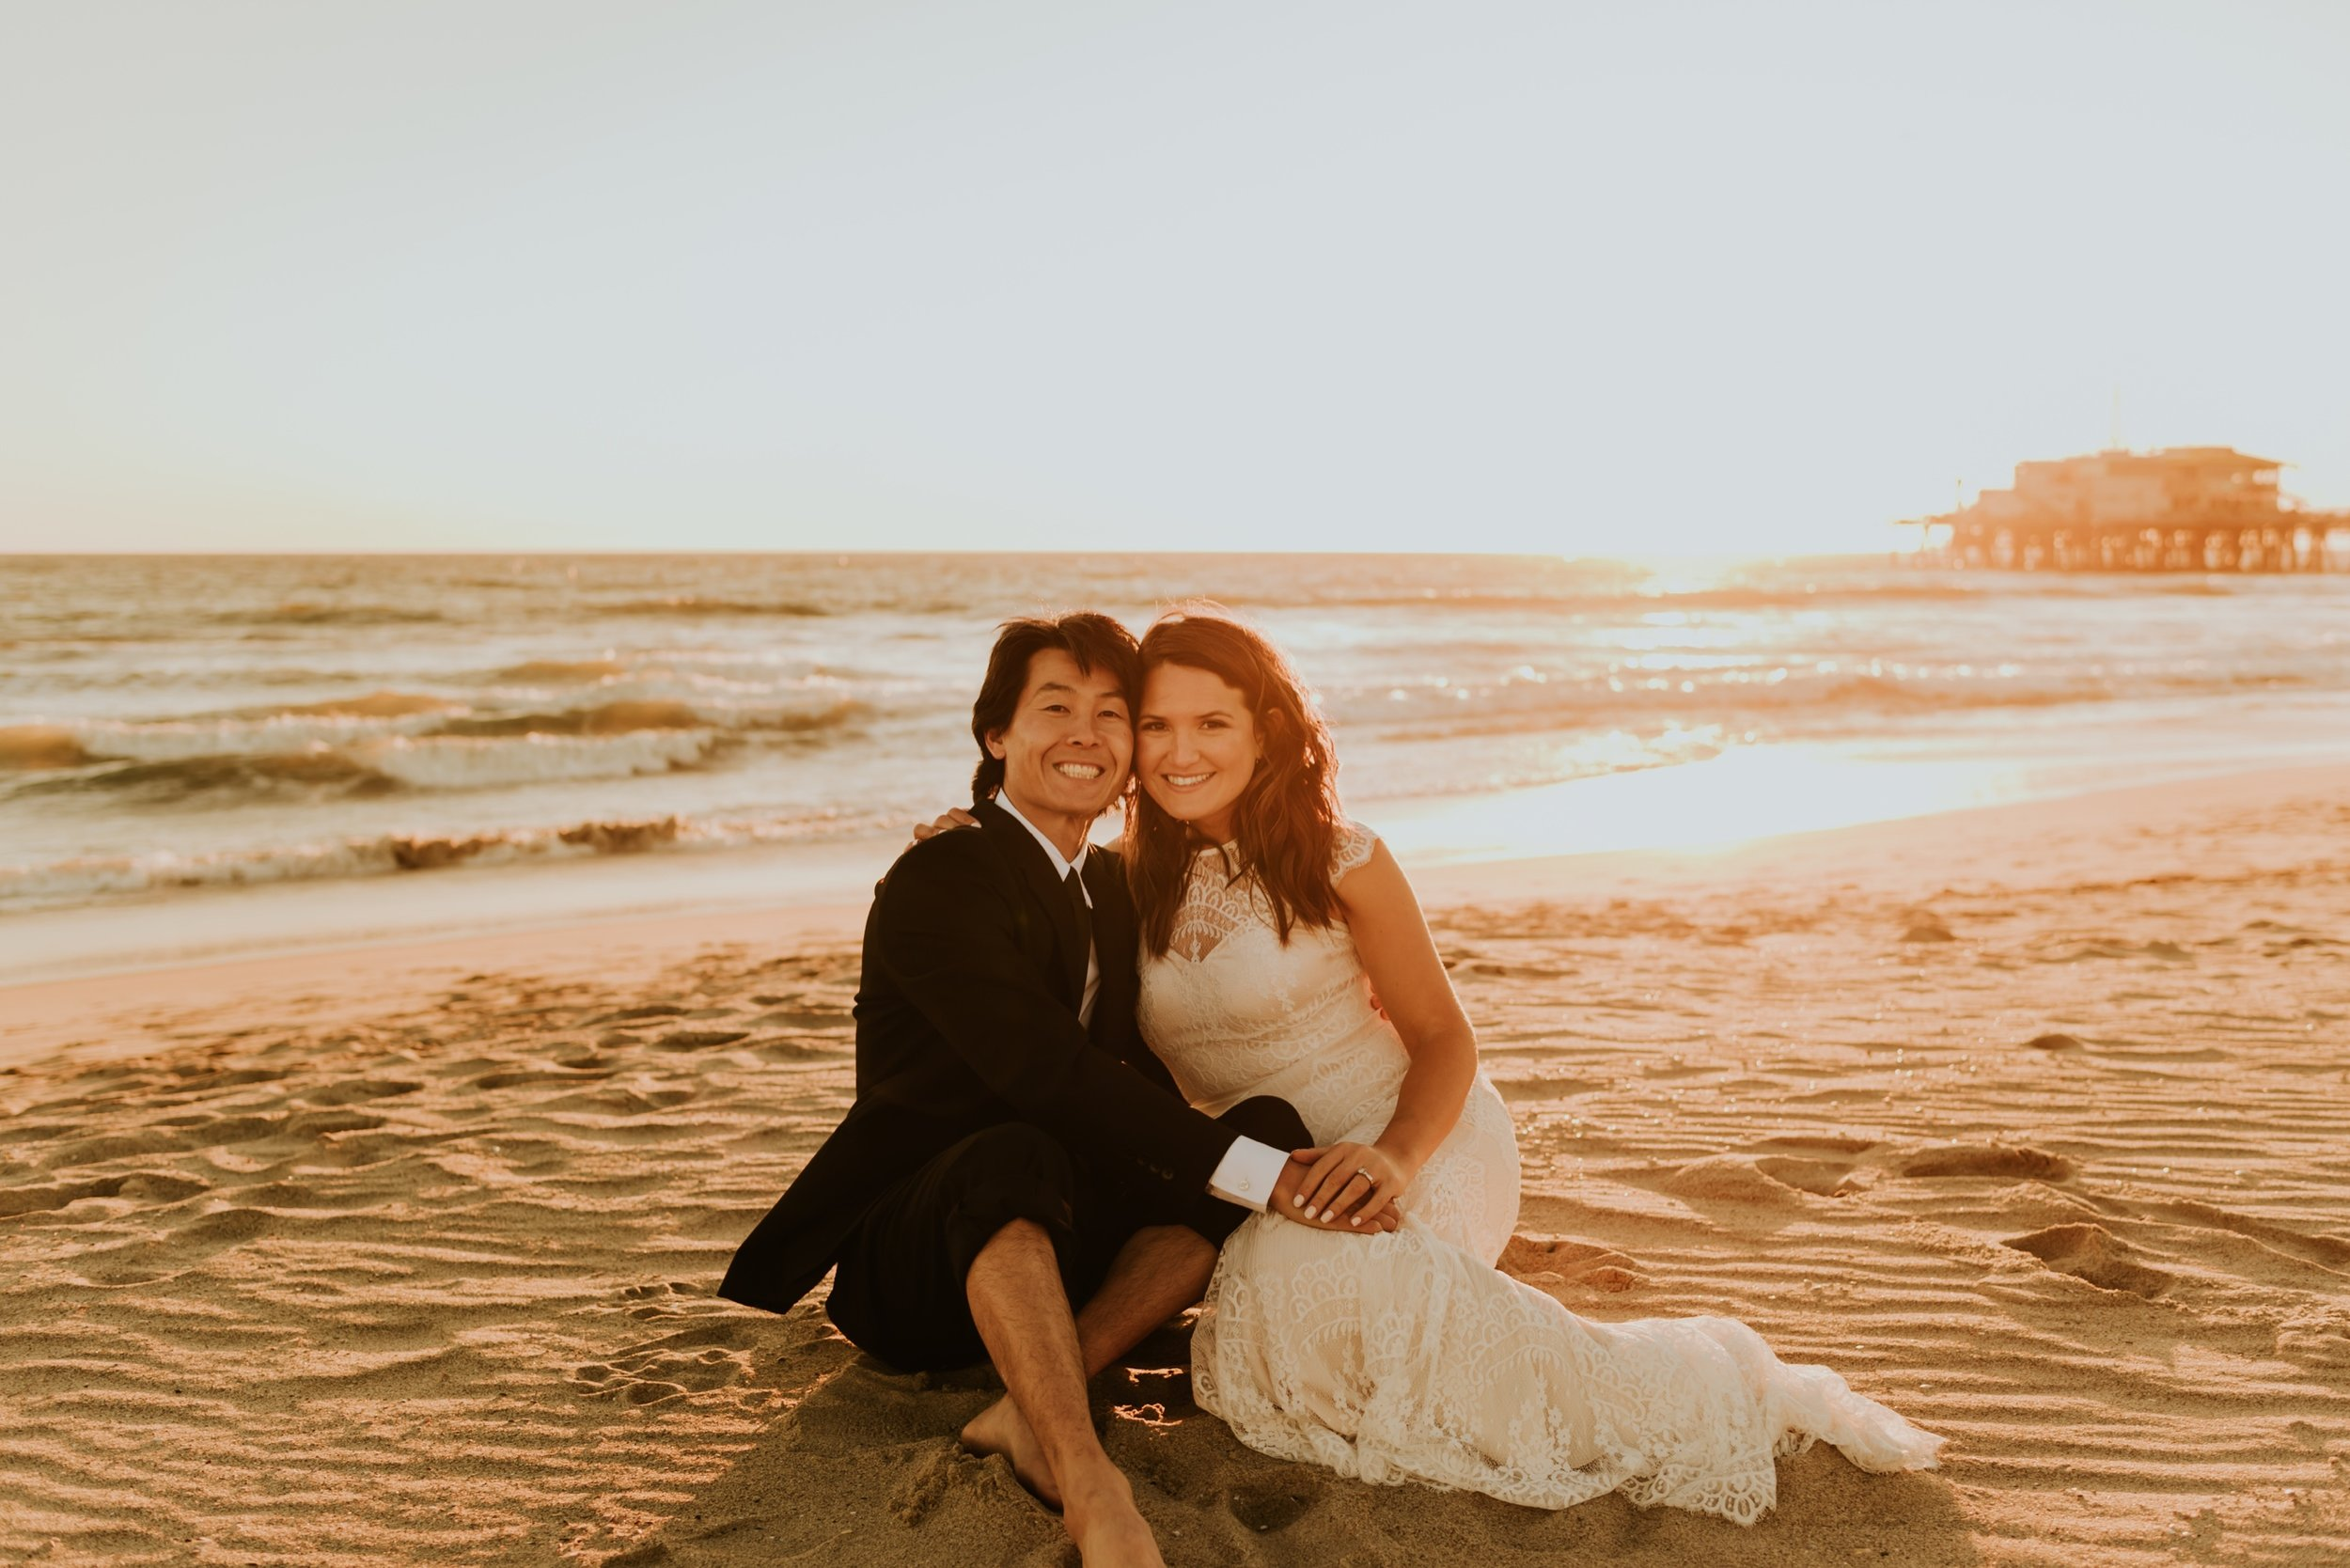 Santa Monica Pier Wedding Photos | Carrie Rogers Photography |  Santa Monica Beach Wedding | Beverly Hills Elopement | Beverly Hills Wedding  | Sunset Beach Photos